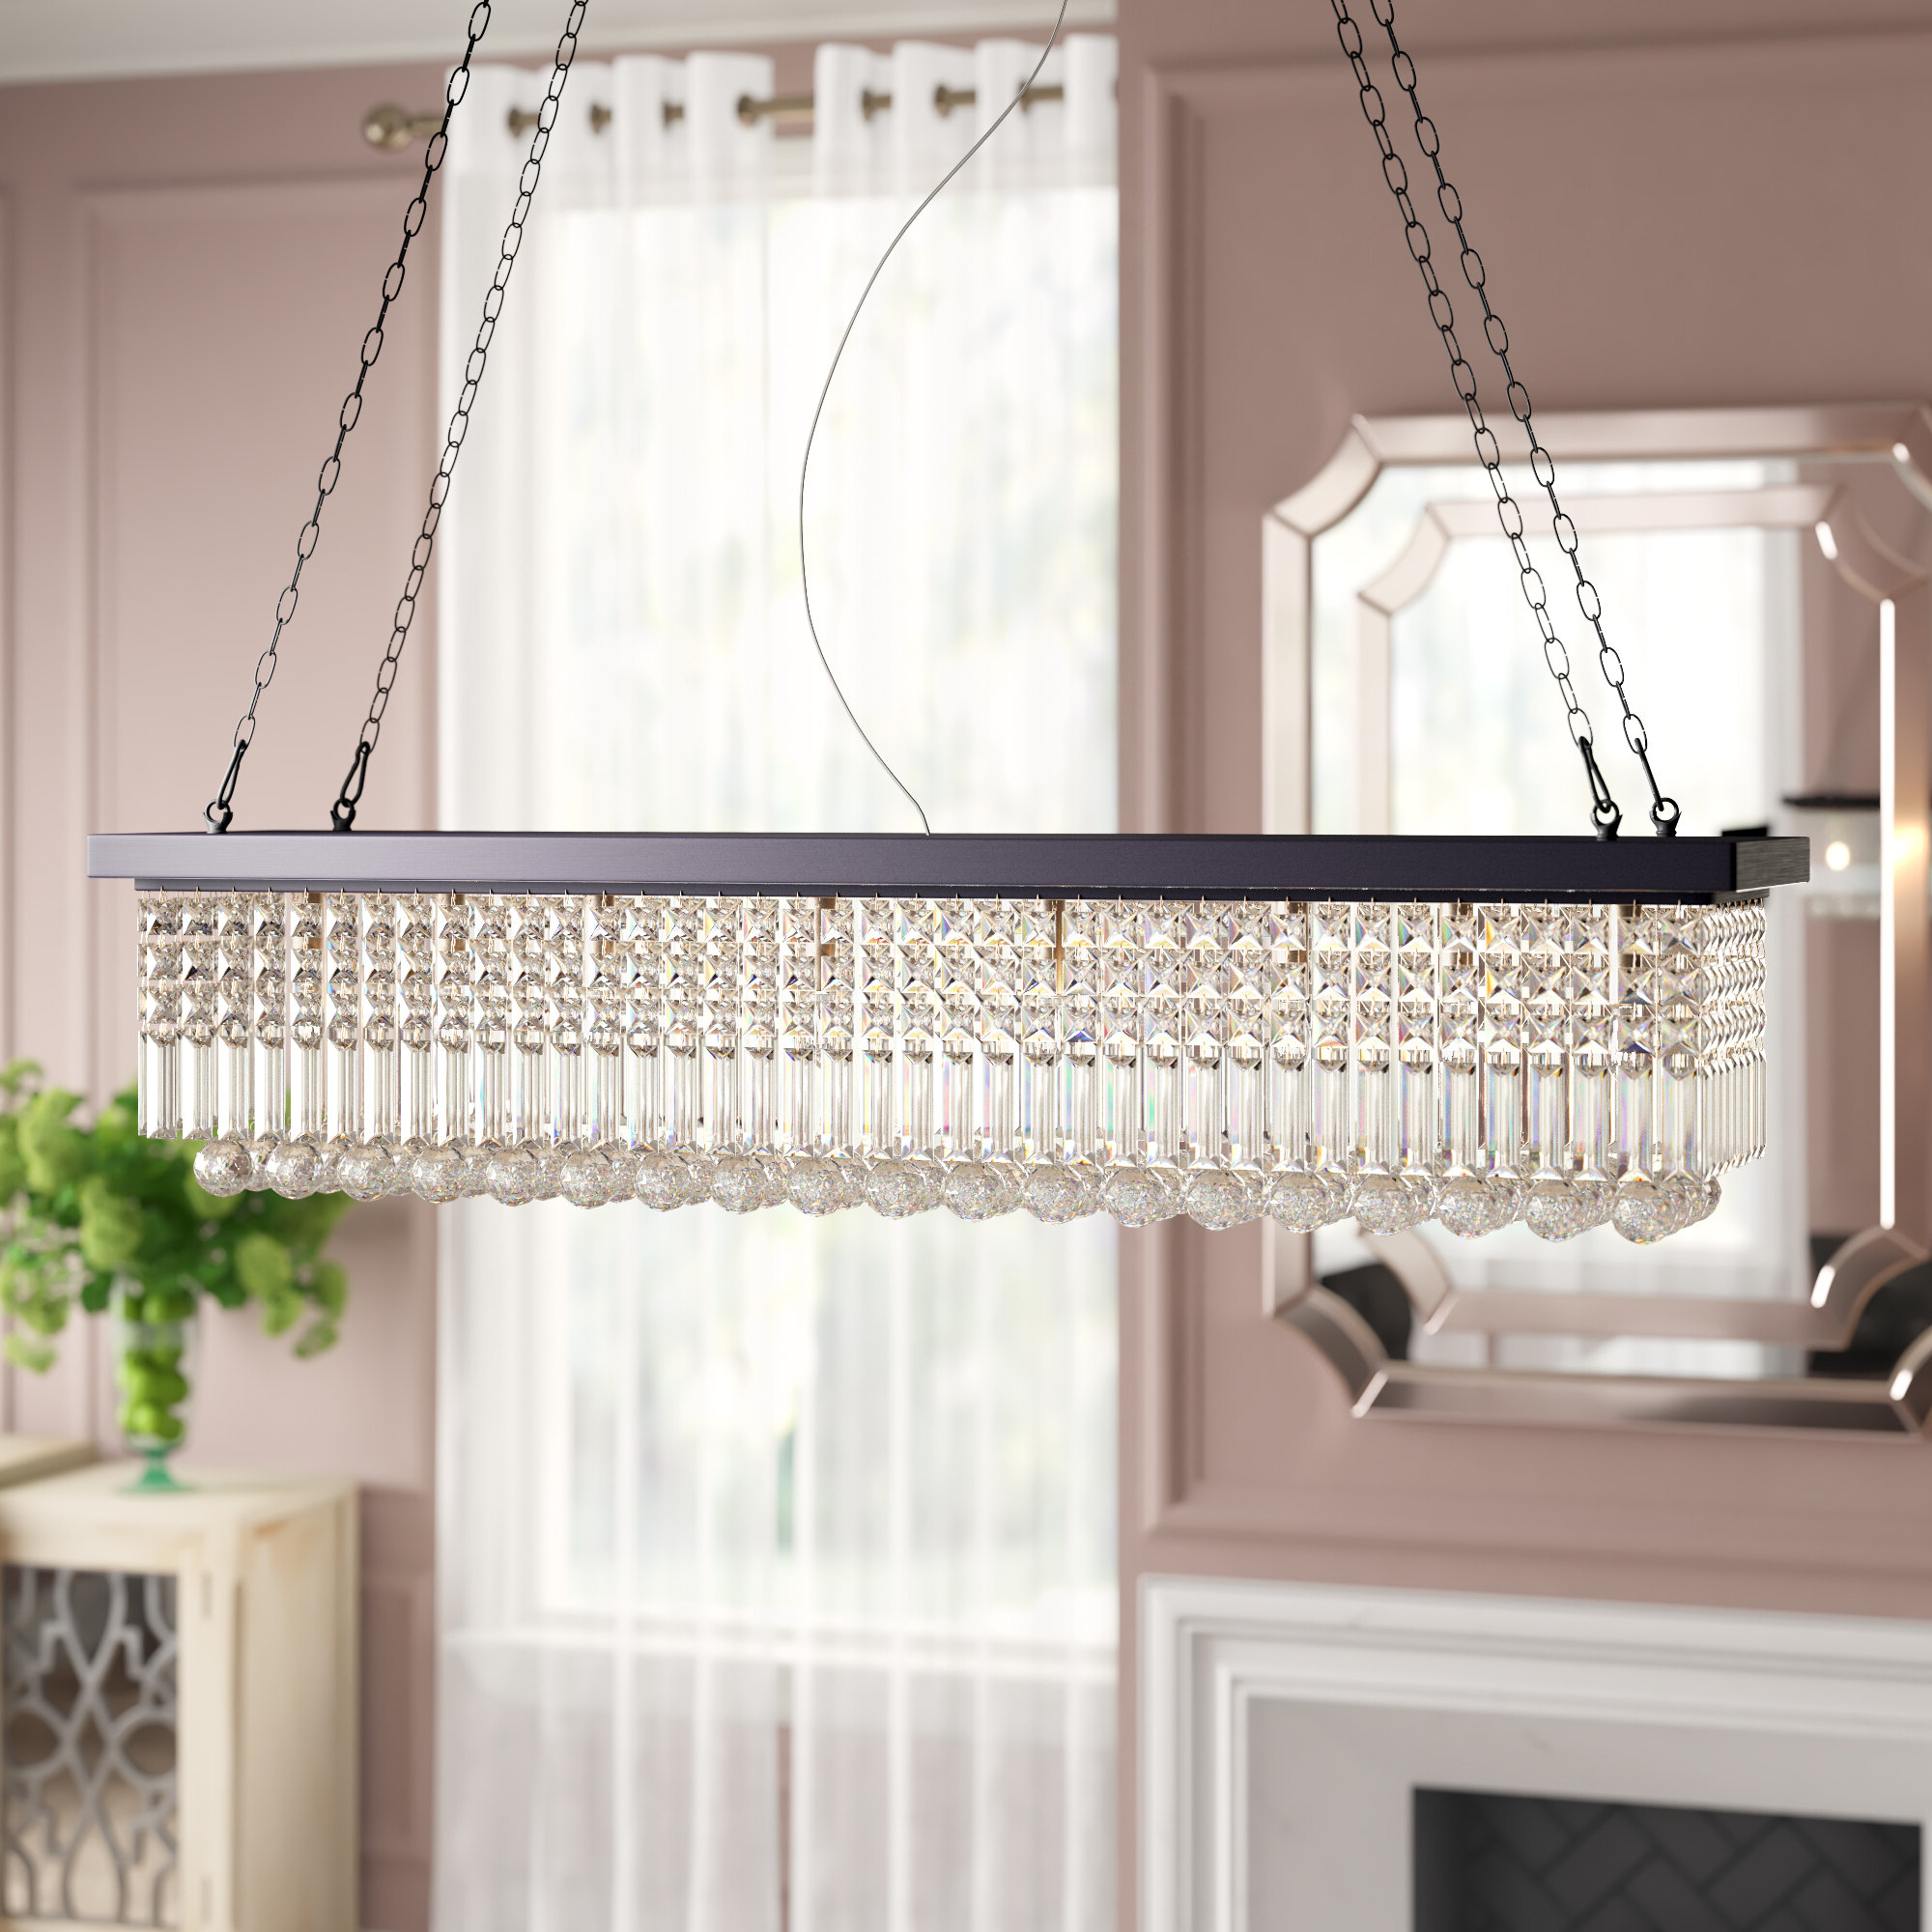 Preferred Gracelyn 8 Light Kitchen Island Pendant Regarding Gracelyn 8 Light Kitchen Island Pendants (View 16 of 20)